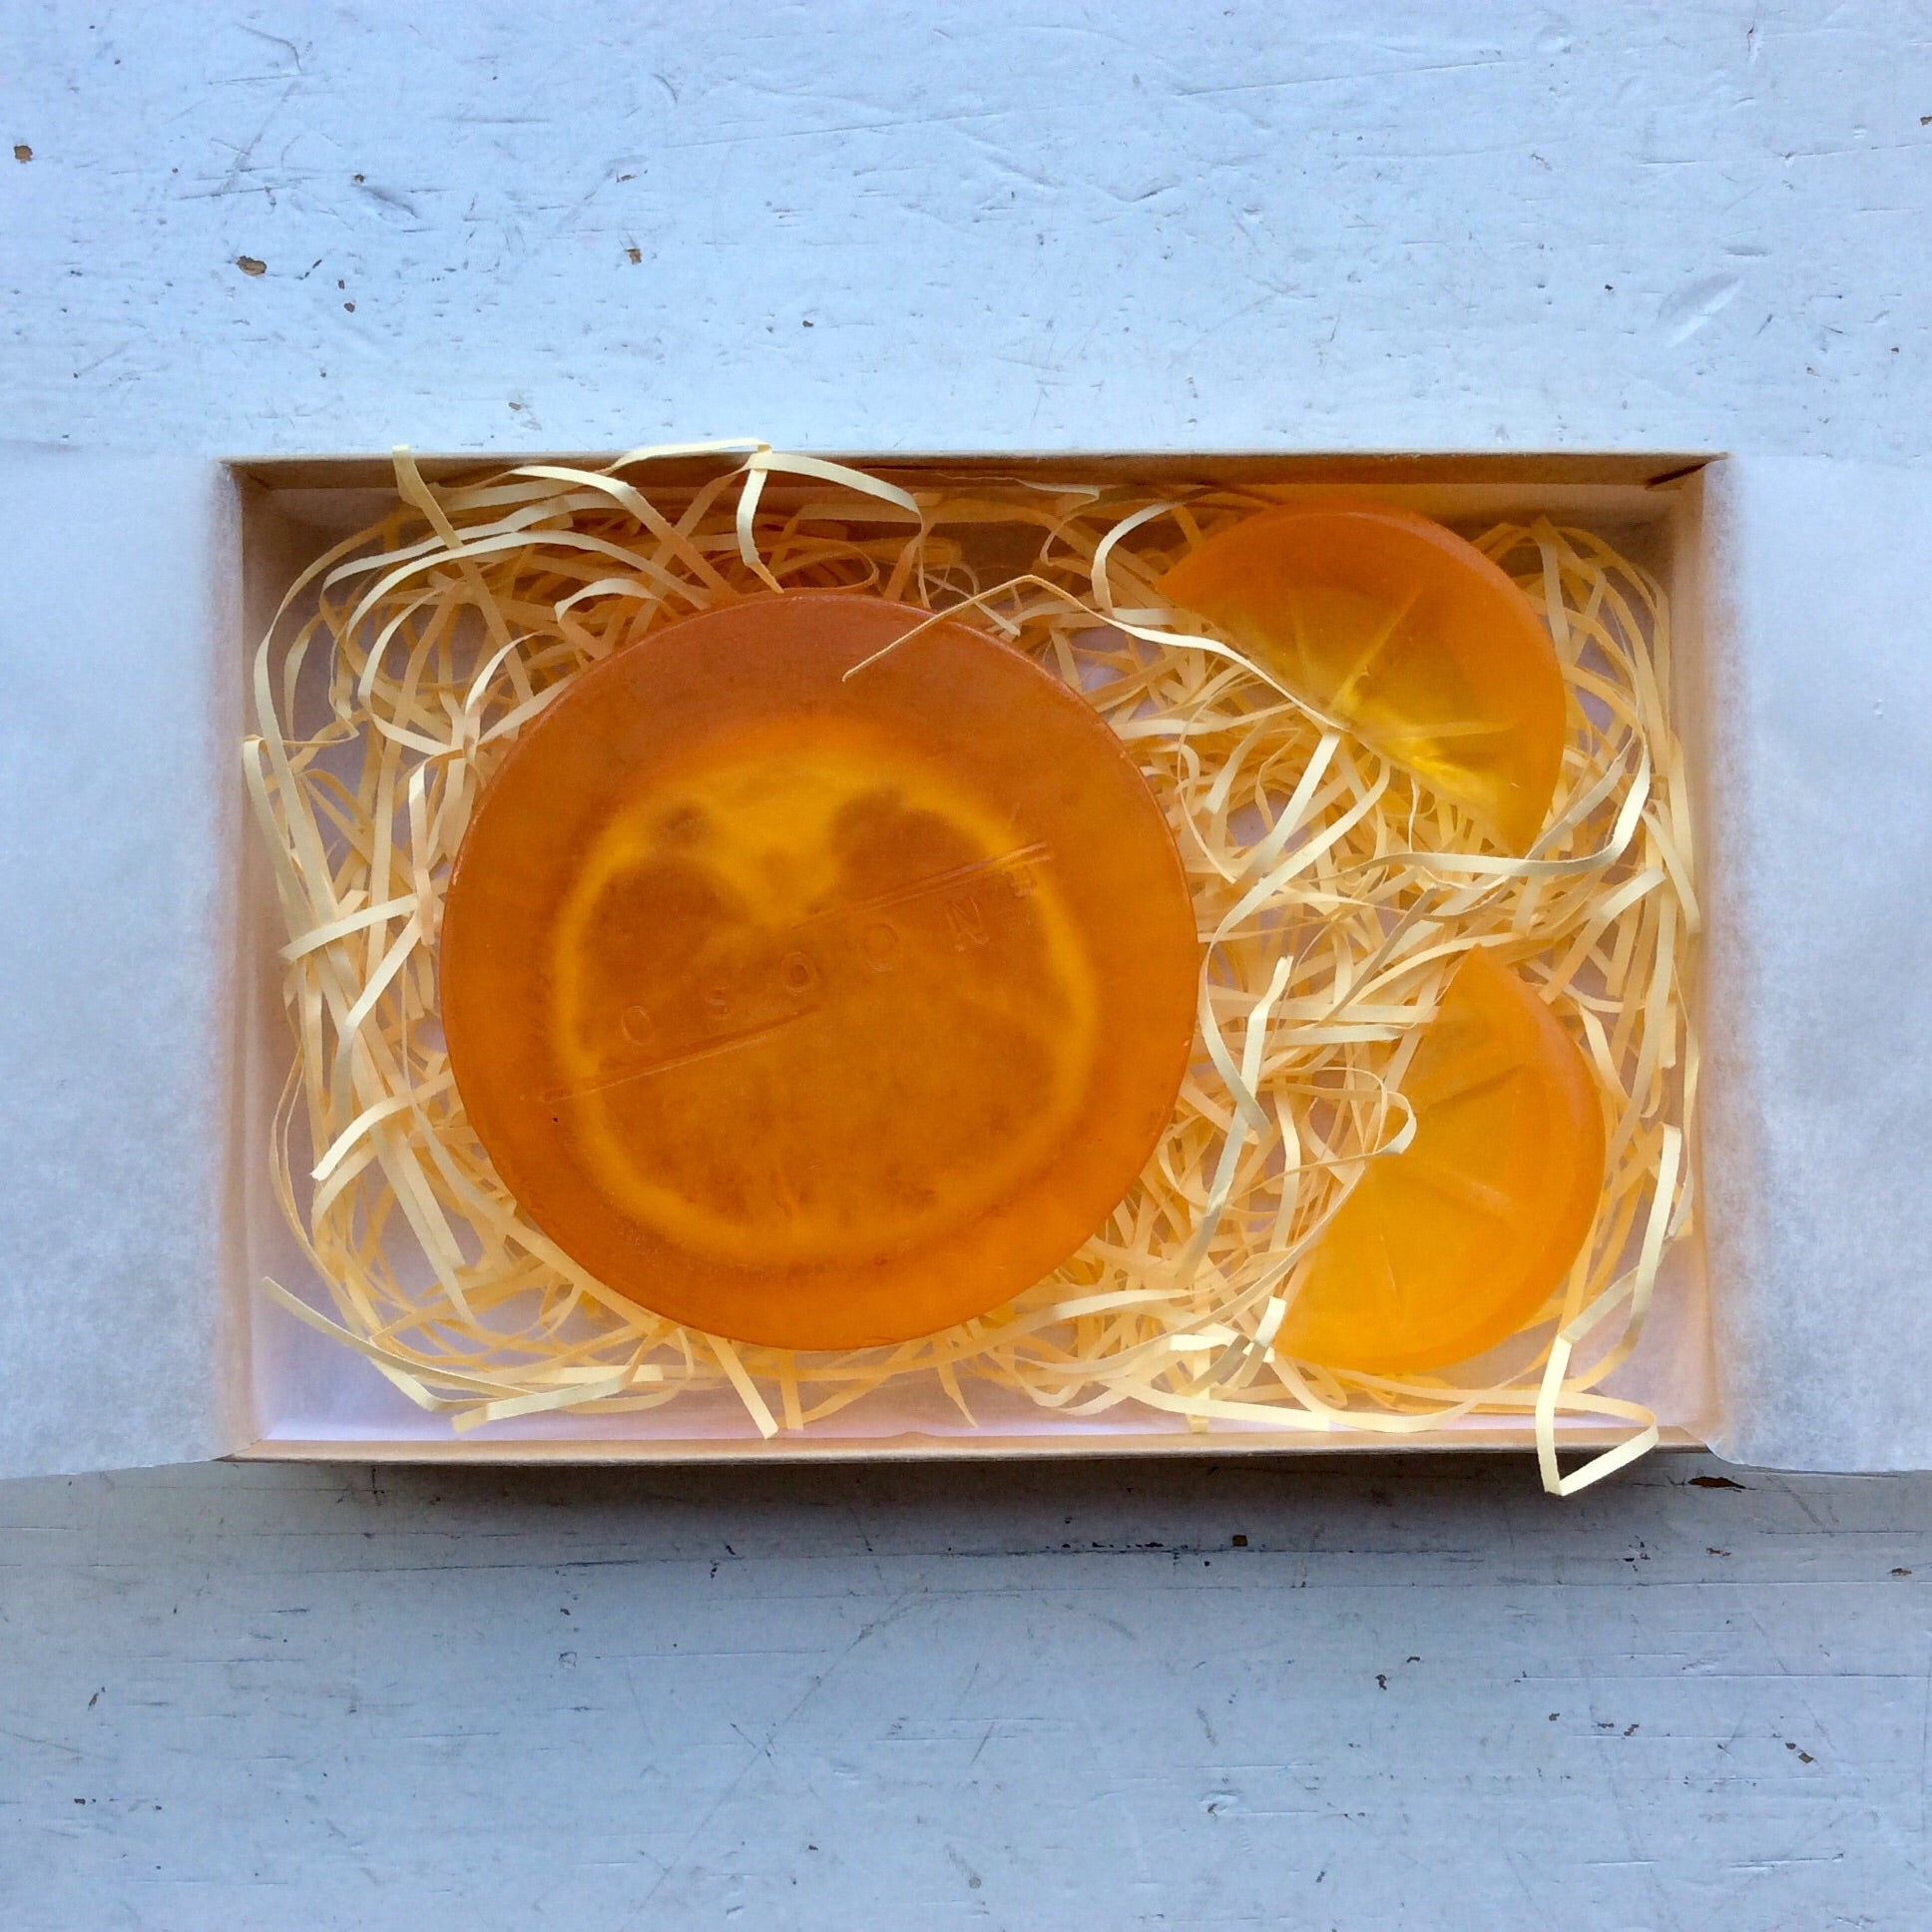 OSOON HAND MADE SOAP / ORANGE BLOSSOM